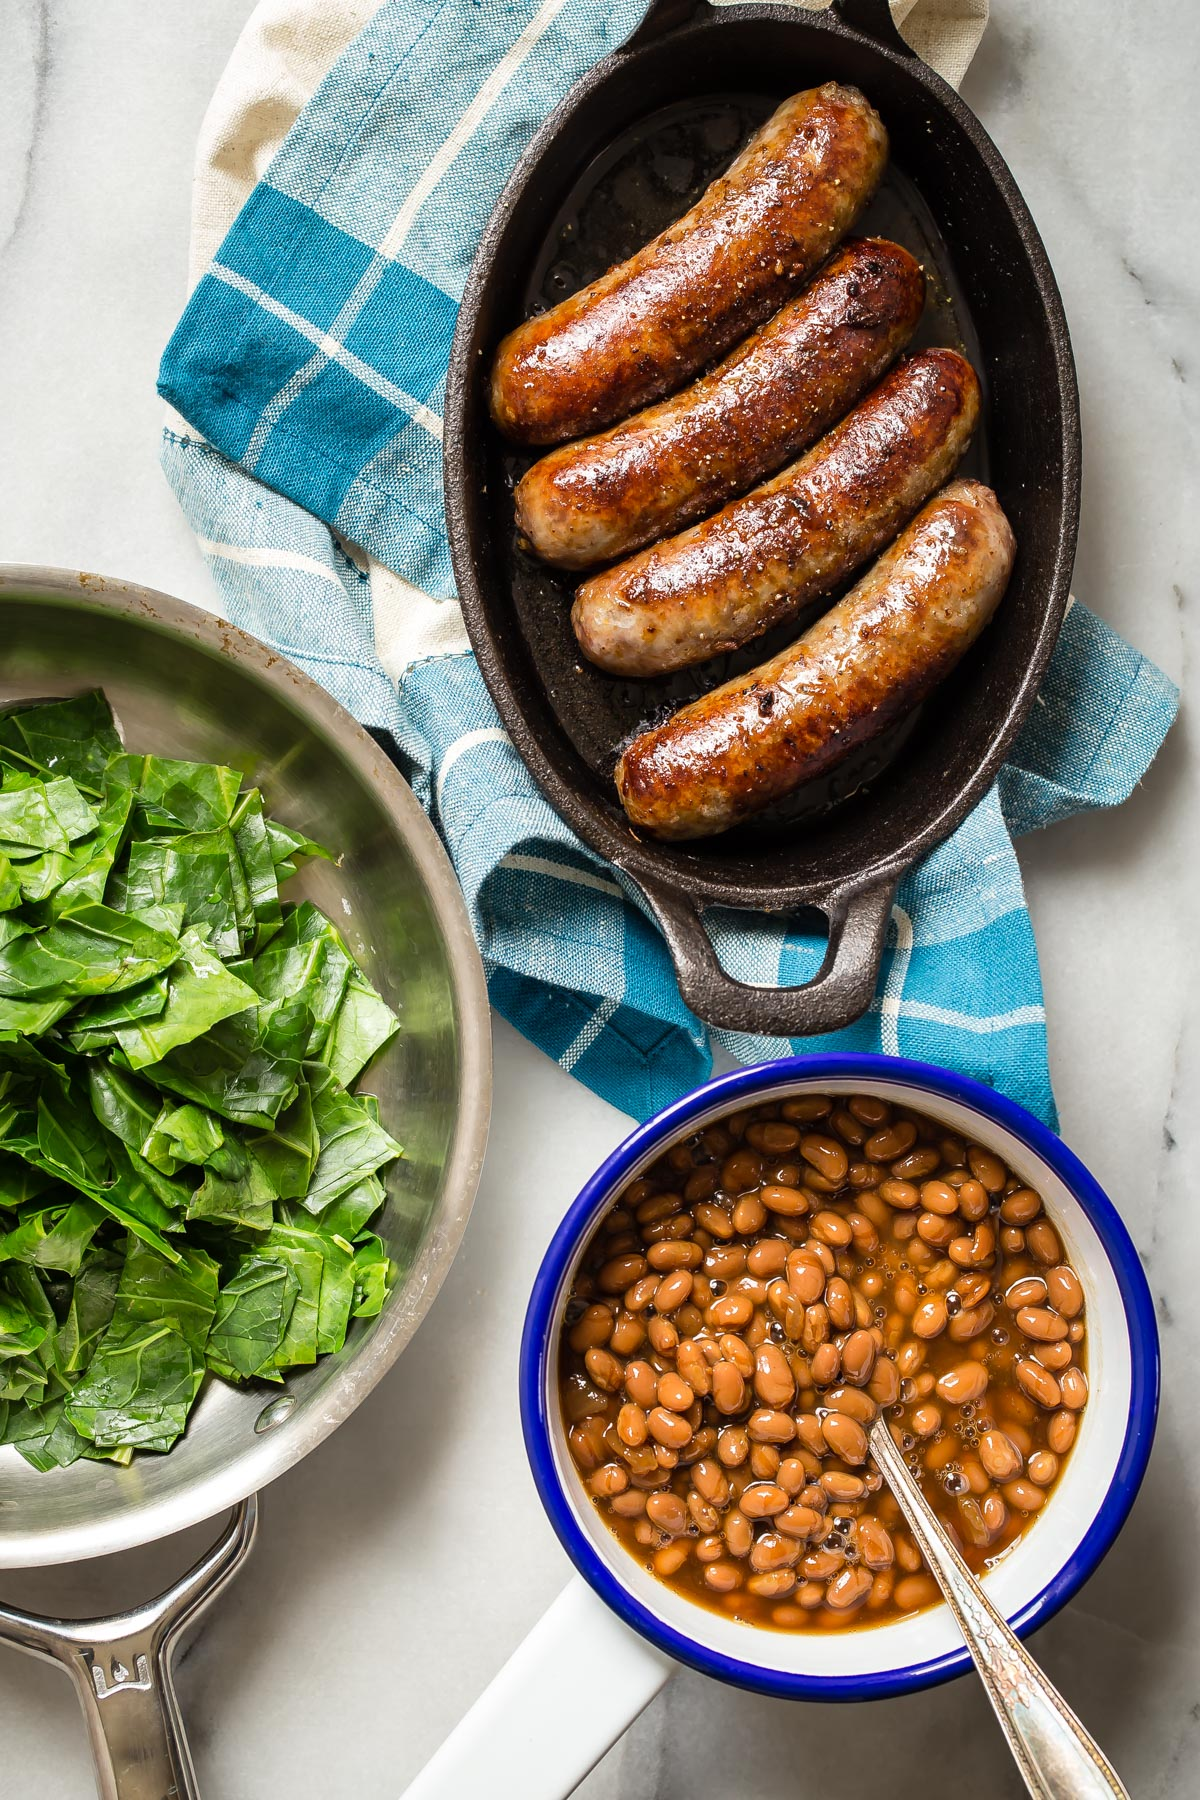 bratwurst sausages with baked beans and collard greens